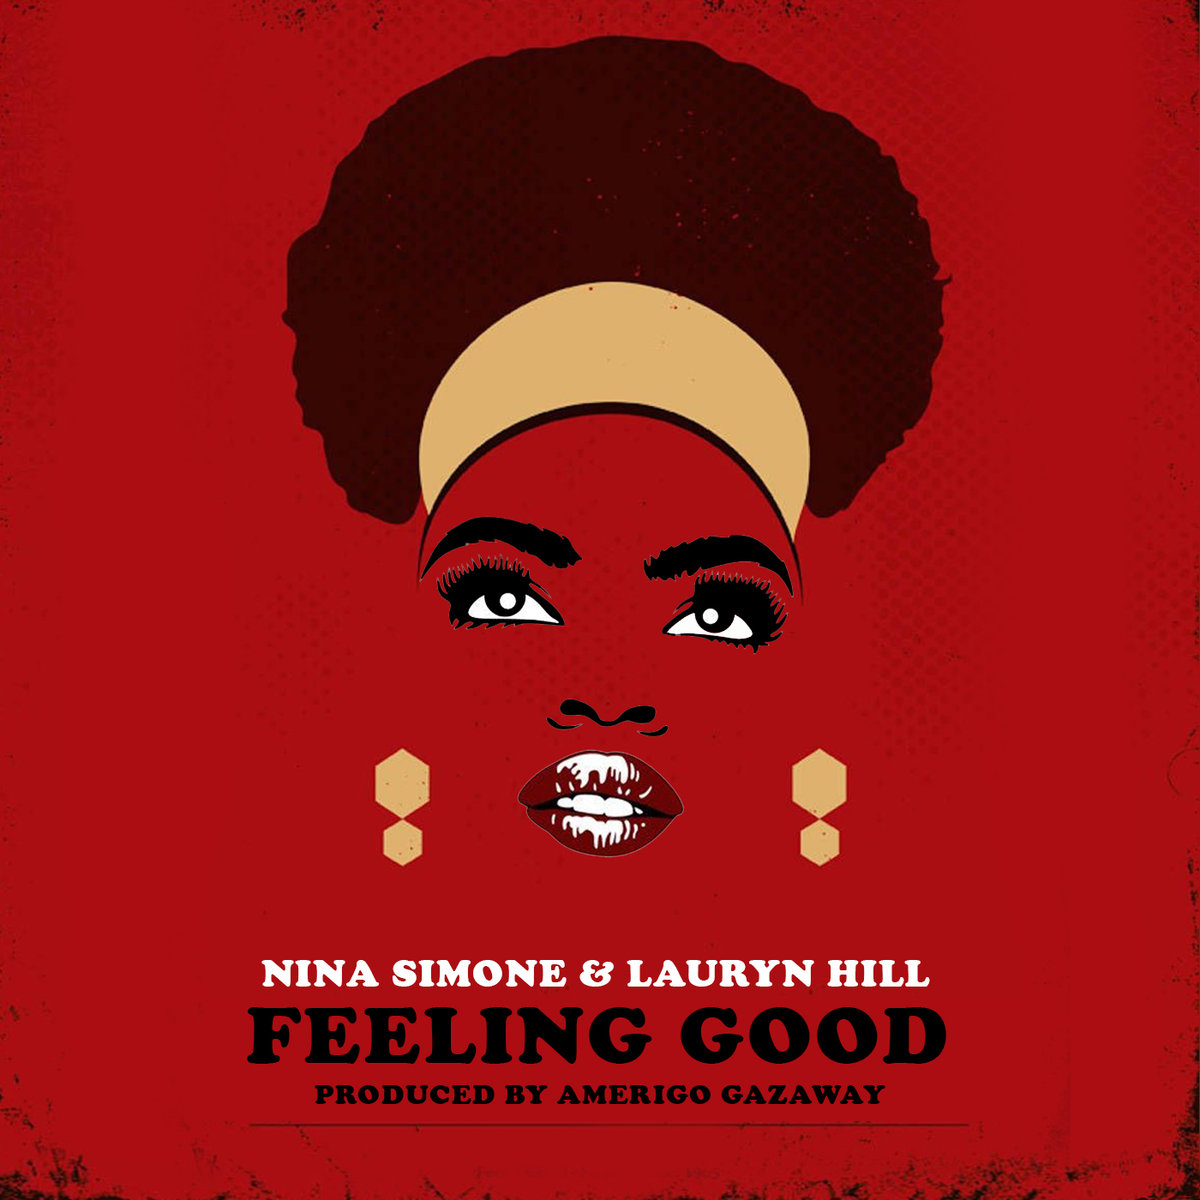 Aus der Serie 'collaborations that never were' von Amerigo Gazaway: Nina Simone & Lauryn Hill - Feeling Good